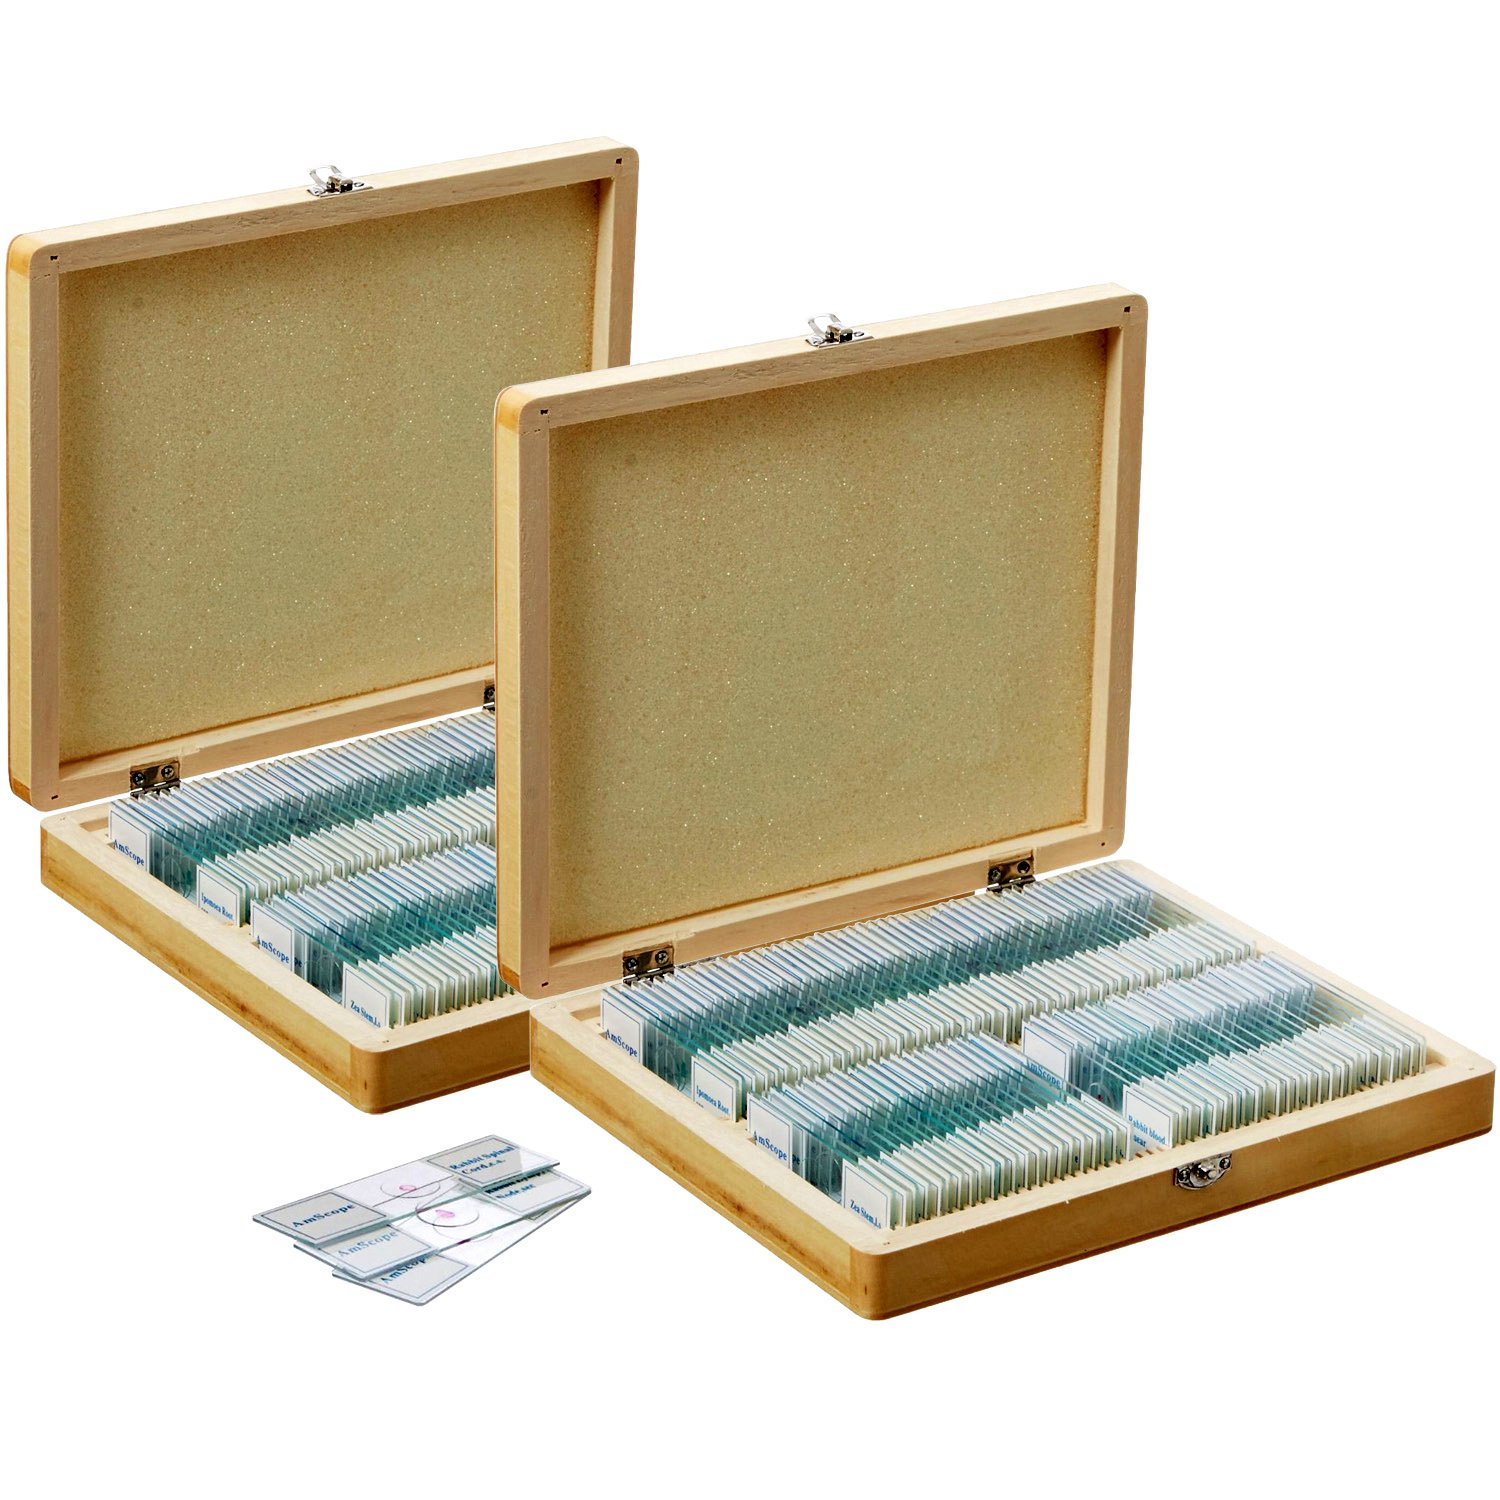 AmScope PS200A Prepared Microscope Slide Set for Basic Biological Science Education, 200 Slides, Set A, Includes Fitted Wooden Case by AmScope